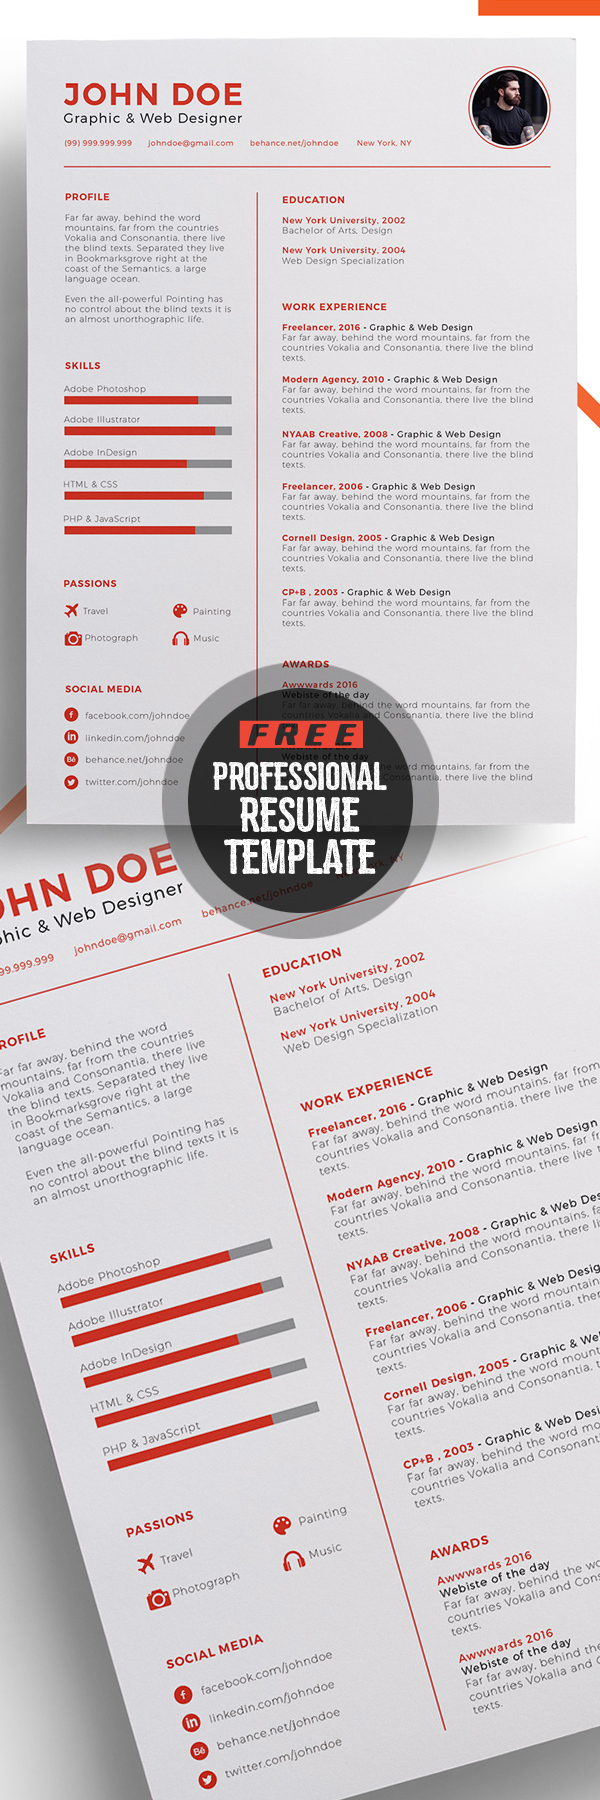 Stylish Word Photo Resume Templates Creative. Professional Free